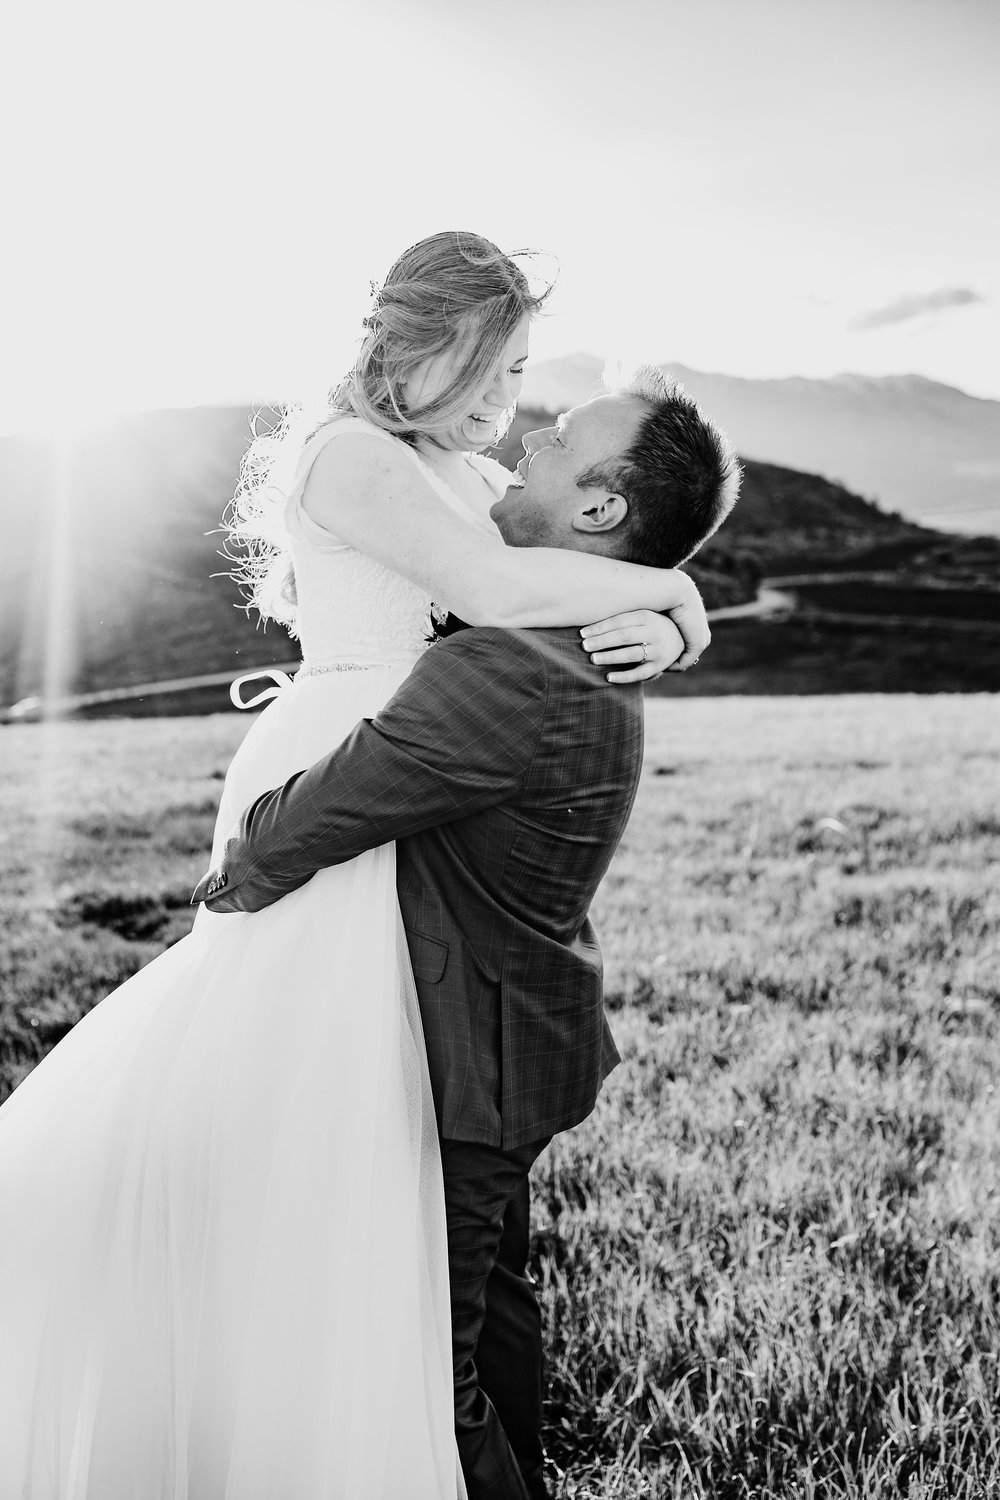 black and white romantic wedding day photography arvada colorado photographer for couples and weddings